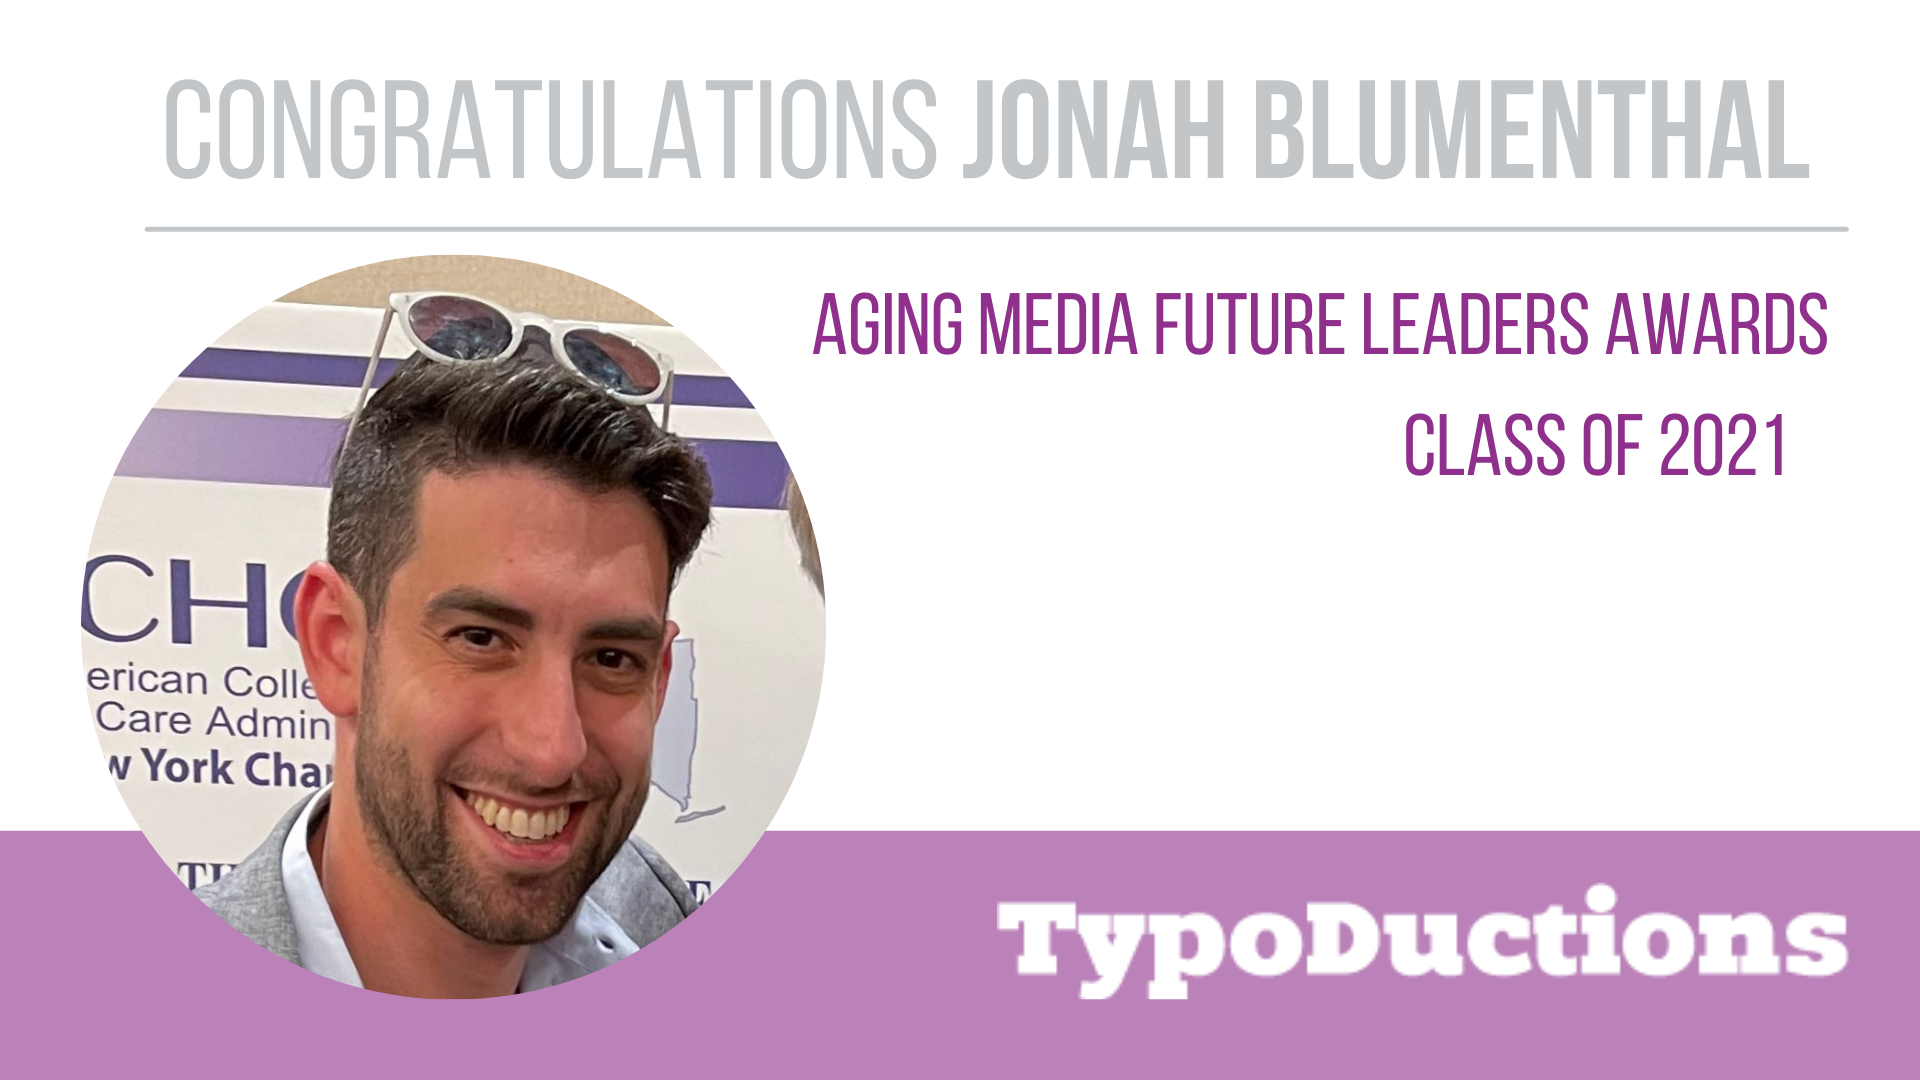 Jonah Blumenthal Recognized as a Future Leader by Aging Media!